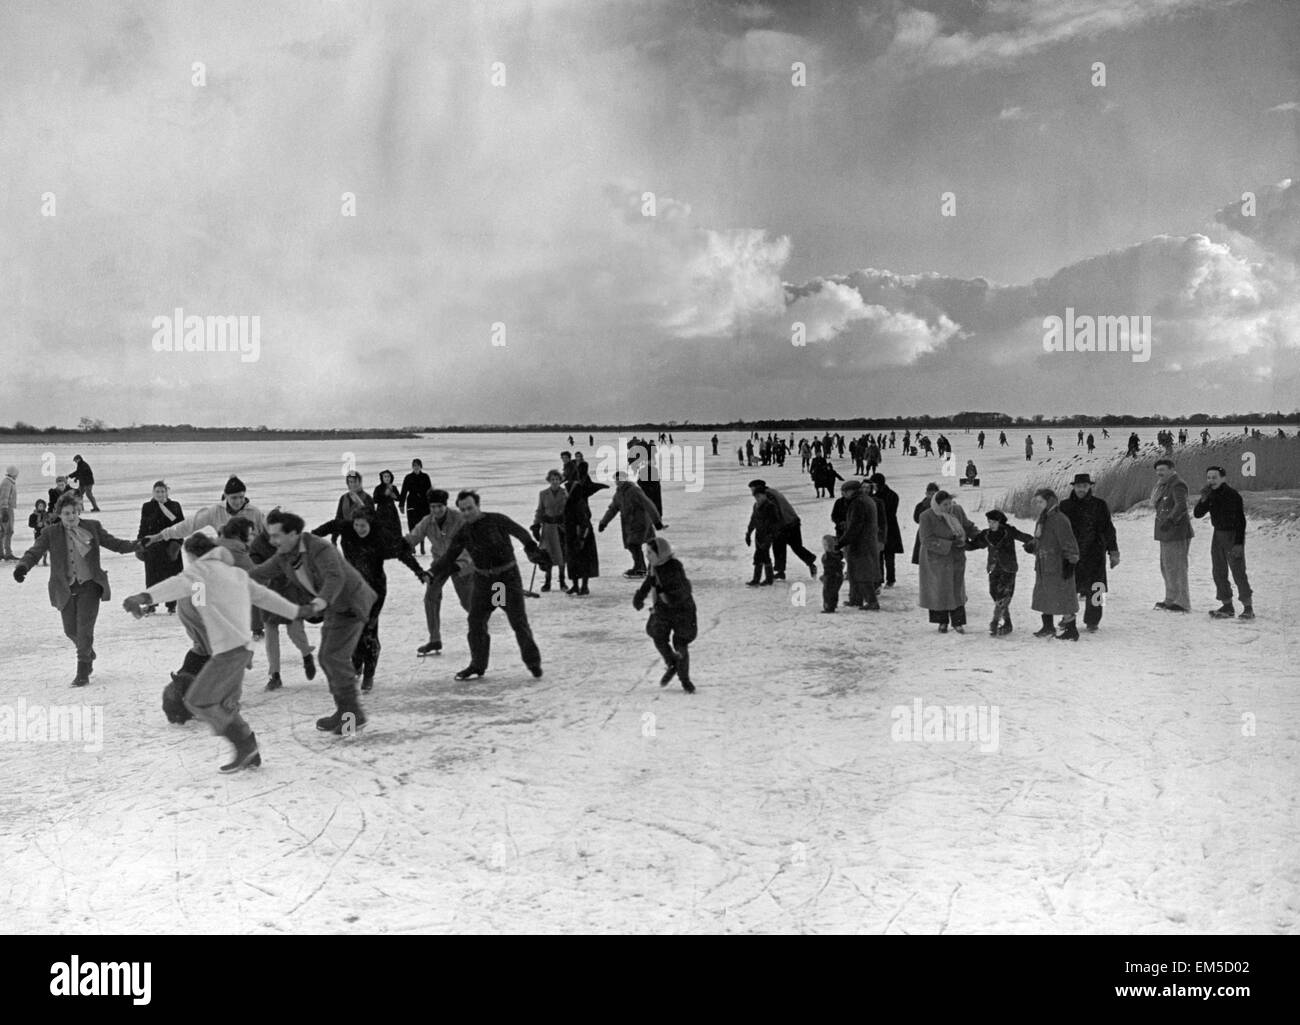 People skating on the frozen Hickling Broad in Norfolk after it iced over January 1954 31/01/1954 - Stock Image